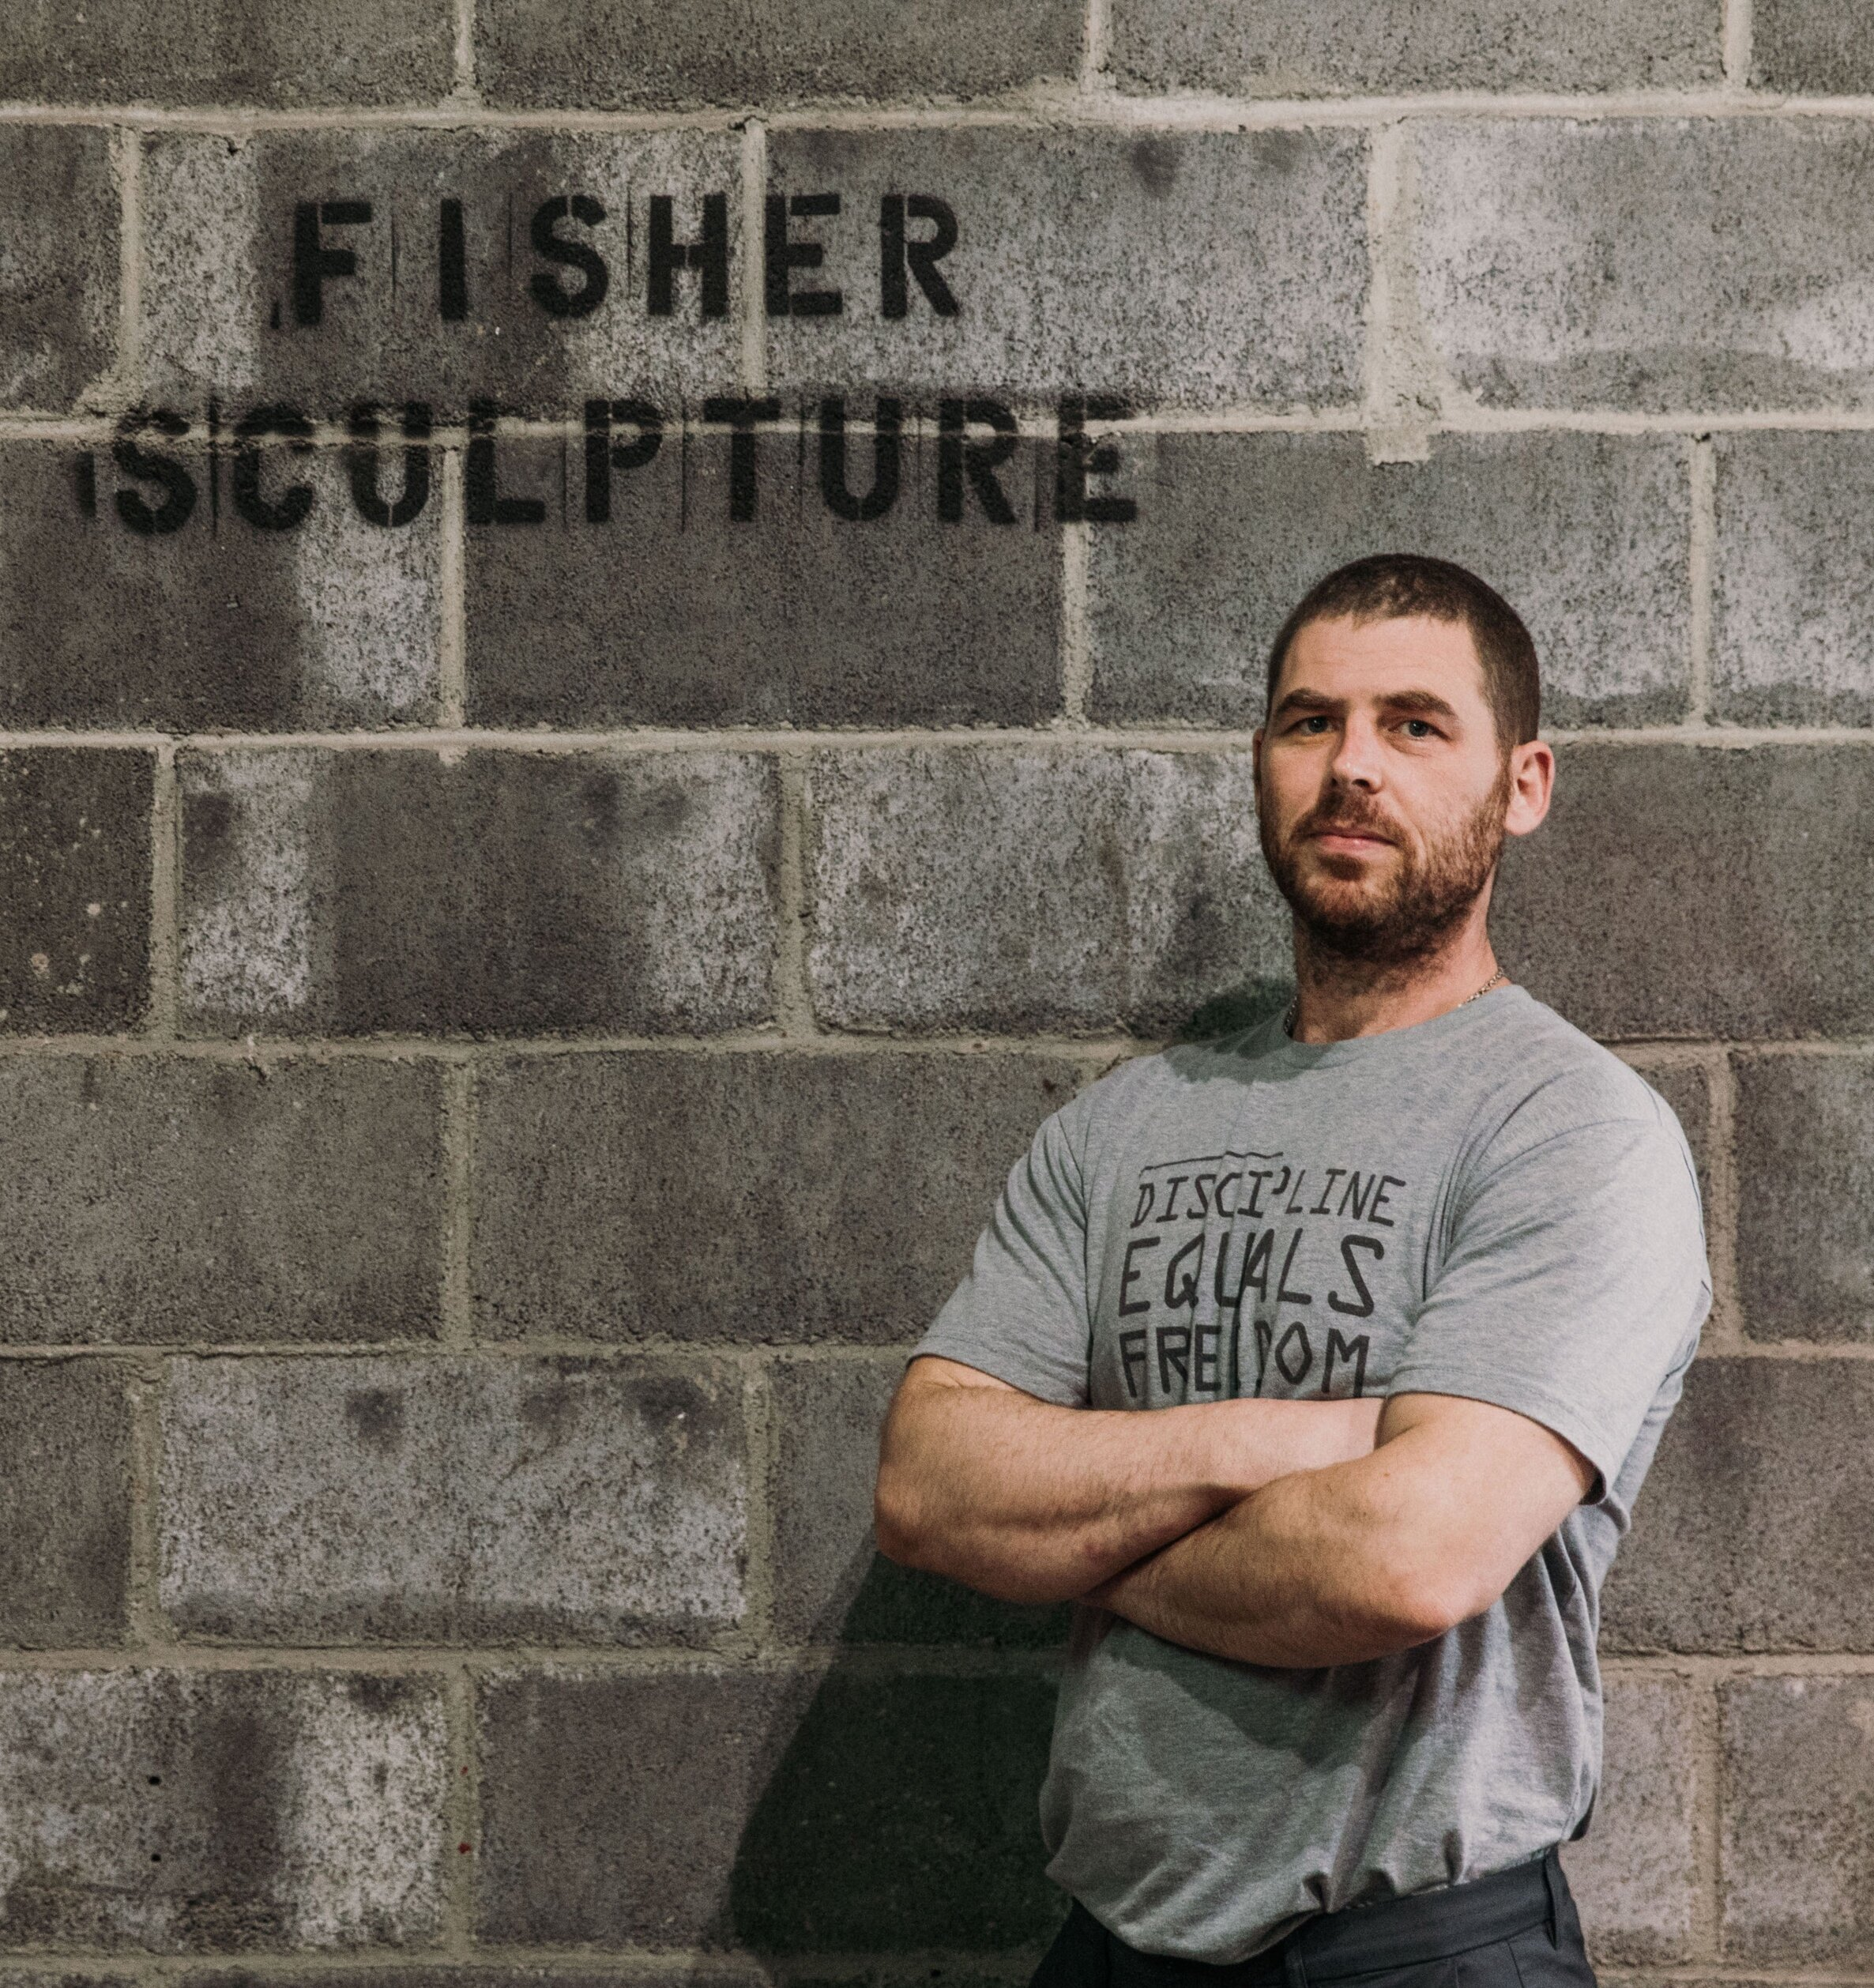 Chad Fisher - I am inspired by nature to create a visual language to communicate with the world around me. My early interest in nature matured to an absolute admiration for one of nature's most beautiful creations, the human figure. The work of my studio looks back through the history of sculptural forms and engages contemporary art themes and my relationship to the figure today.Learning to cast figures in bronze was not a linear path. Even harder than learning to cast in bronze was trying to find authentic information about the figure. After the 18th century formal instruction faded, the figure did not generally include discussion of how ligaments muscles and bones anatomically connect so that the body can represent movement, energy and dance. For 12 years I traveled the United States and Europe piecing together my personal solutions to Fine Art Figurative Sculpture.When I am not in the studio/foundry I am spending with my family. My incredible wife and I have 4 amazing children and we are looking forward to adding a four legged friend in the near future. In 2019 I began studying brazilian jiu jitsu.Thank you to my instructors: Gary Weisman, Stephen Perkins, Myron Barnstone, Michael Grimaldi, Dan Thompson, Kate Lehman, Jon DeMartin, Kevin P. Lewellen, Stuart Mark Feldman, John Horn, Al Gury, Renée P. Foulks, Anthony Visco, Steven Weiss, Frank Porcu, Joseph Petrovics, Greg Wyatt, John English, John Peacock, Treacy Ziegler, Alexander Hromych, Maren Hassinger, Patrick Kipper and Fran Fisher.